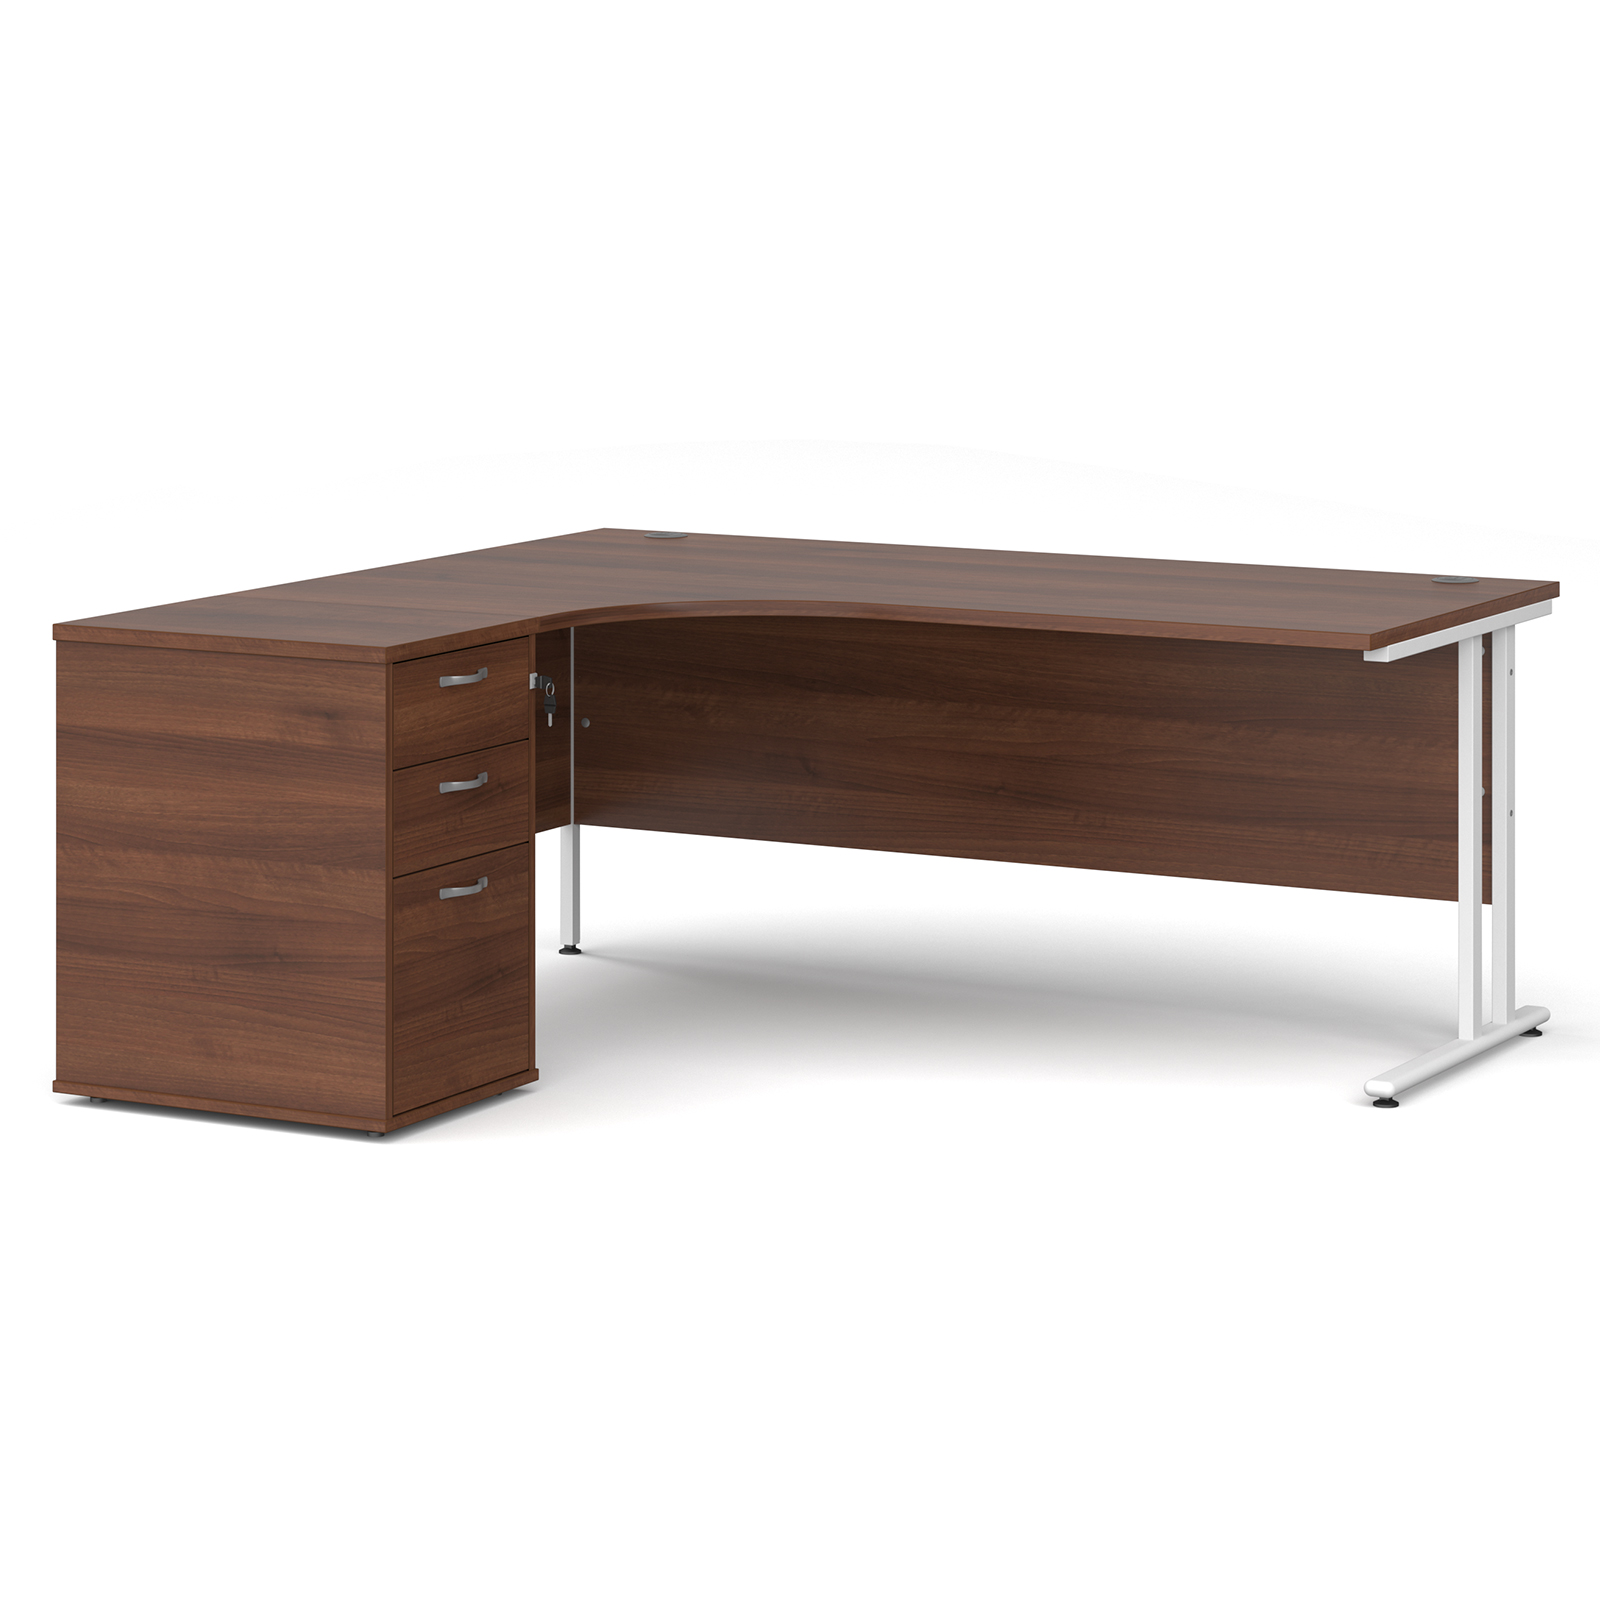 Left Handed Maestro 25 left hand ergonomic desk 1800mm with white cantilever frame and desk high pedestal - walnut